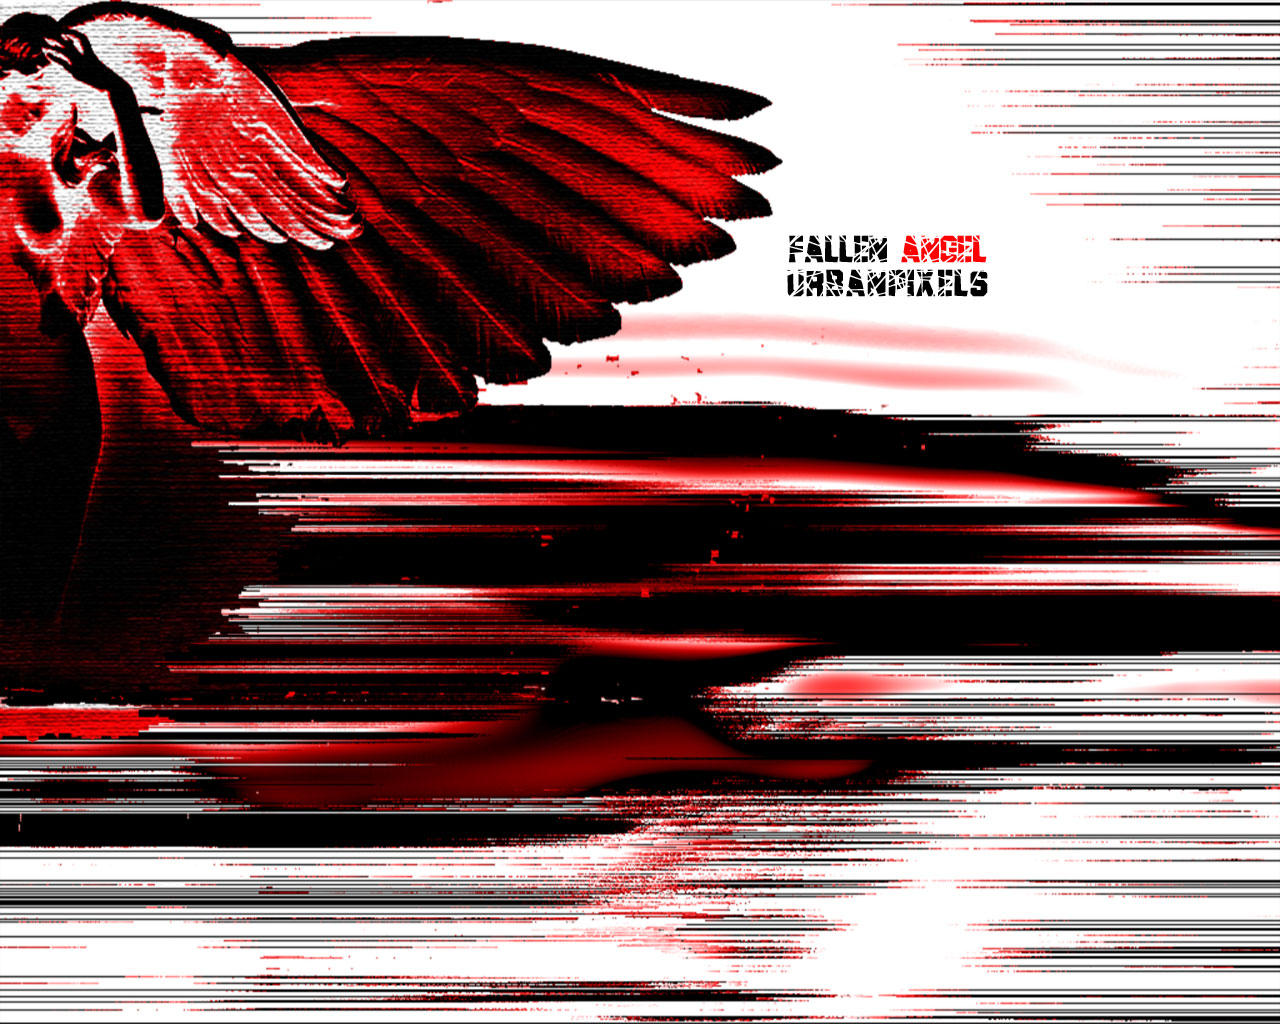 Fallen Angel in Darkness by technics